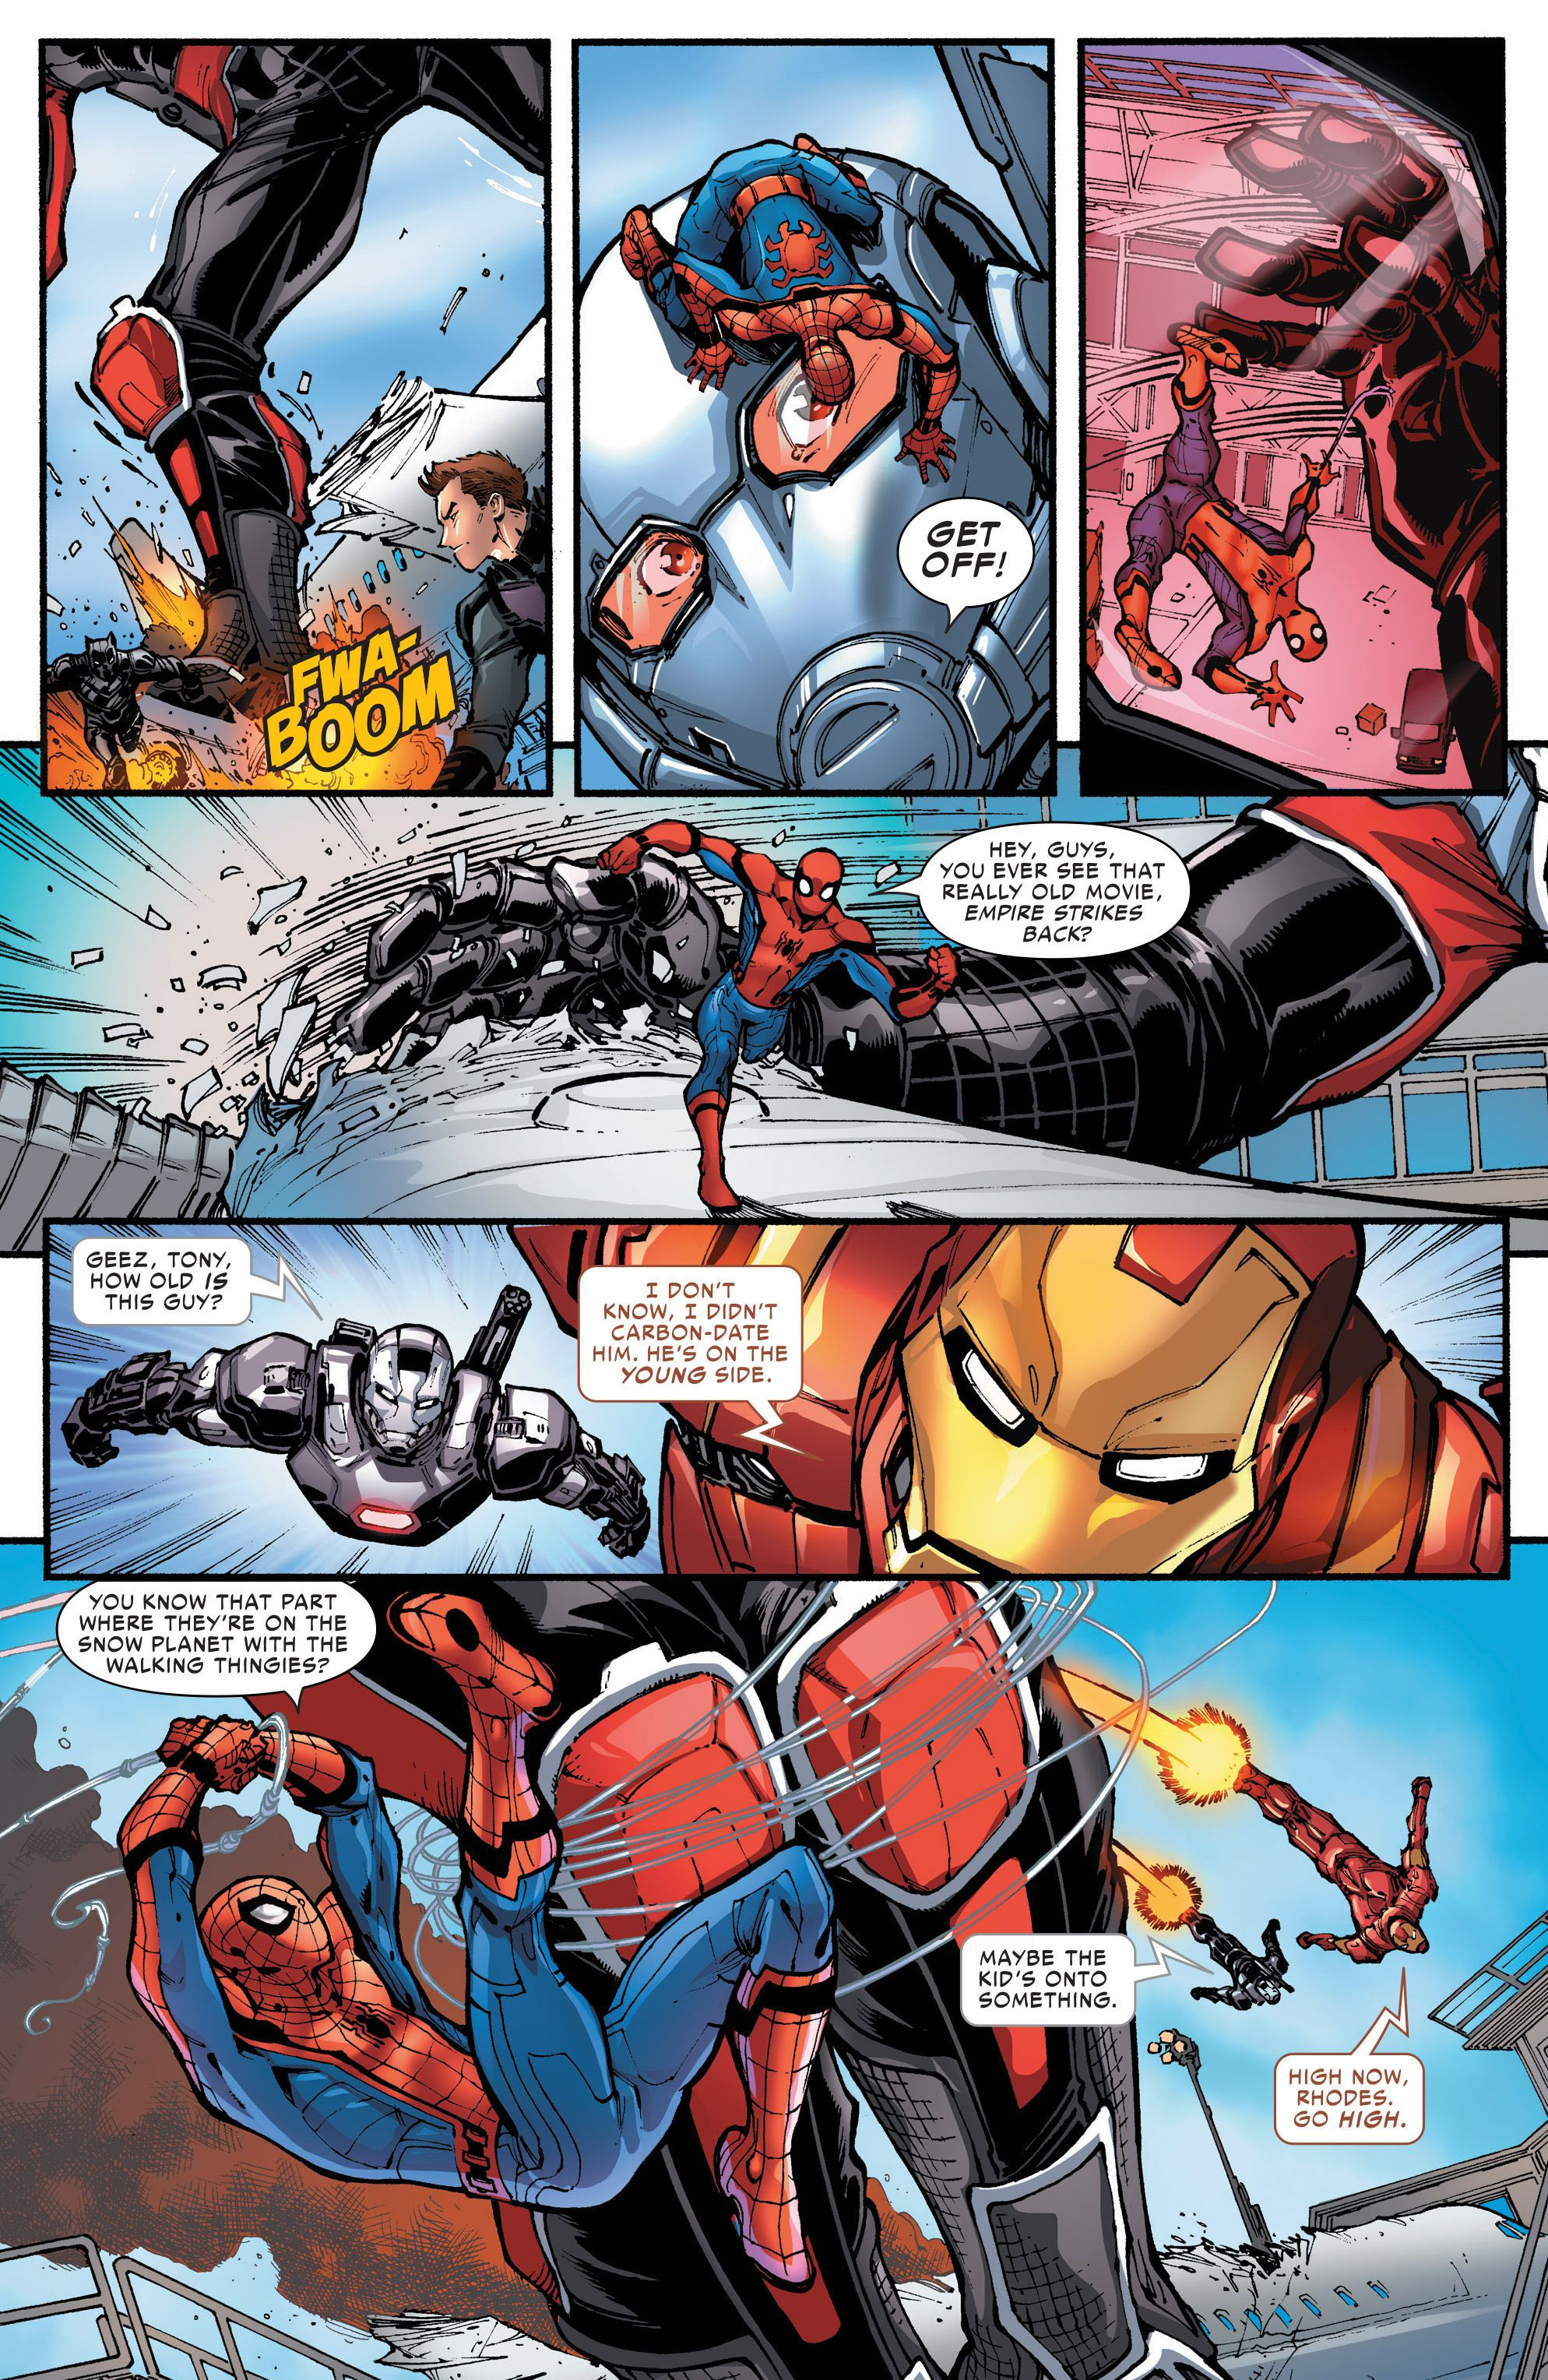 spider man homecoming prelude issue 2 read spider man homecoming prelude issue 2 comic. Black Bedroom Furniture Sets. Home Design Ideas